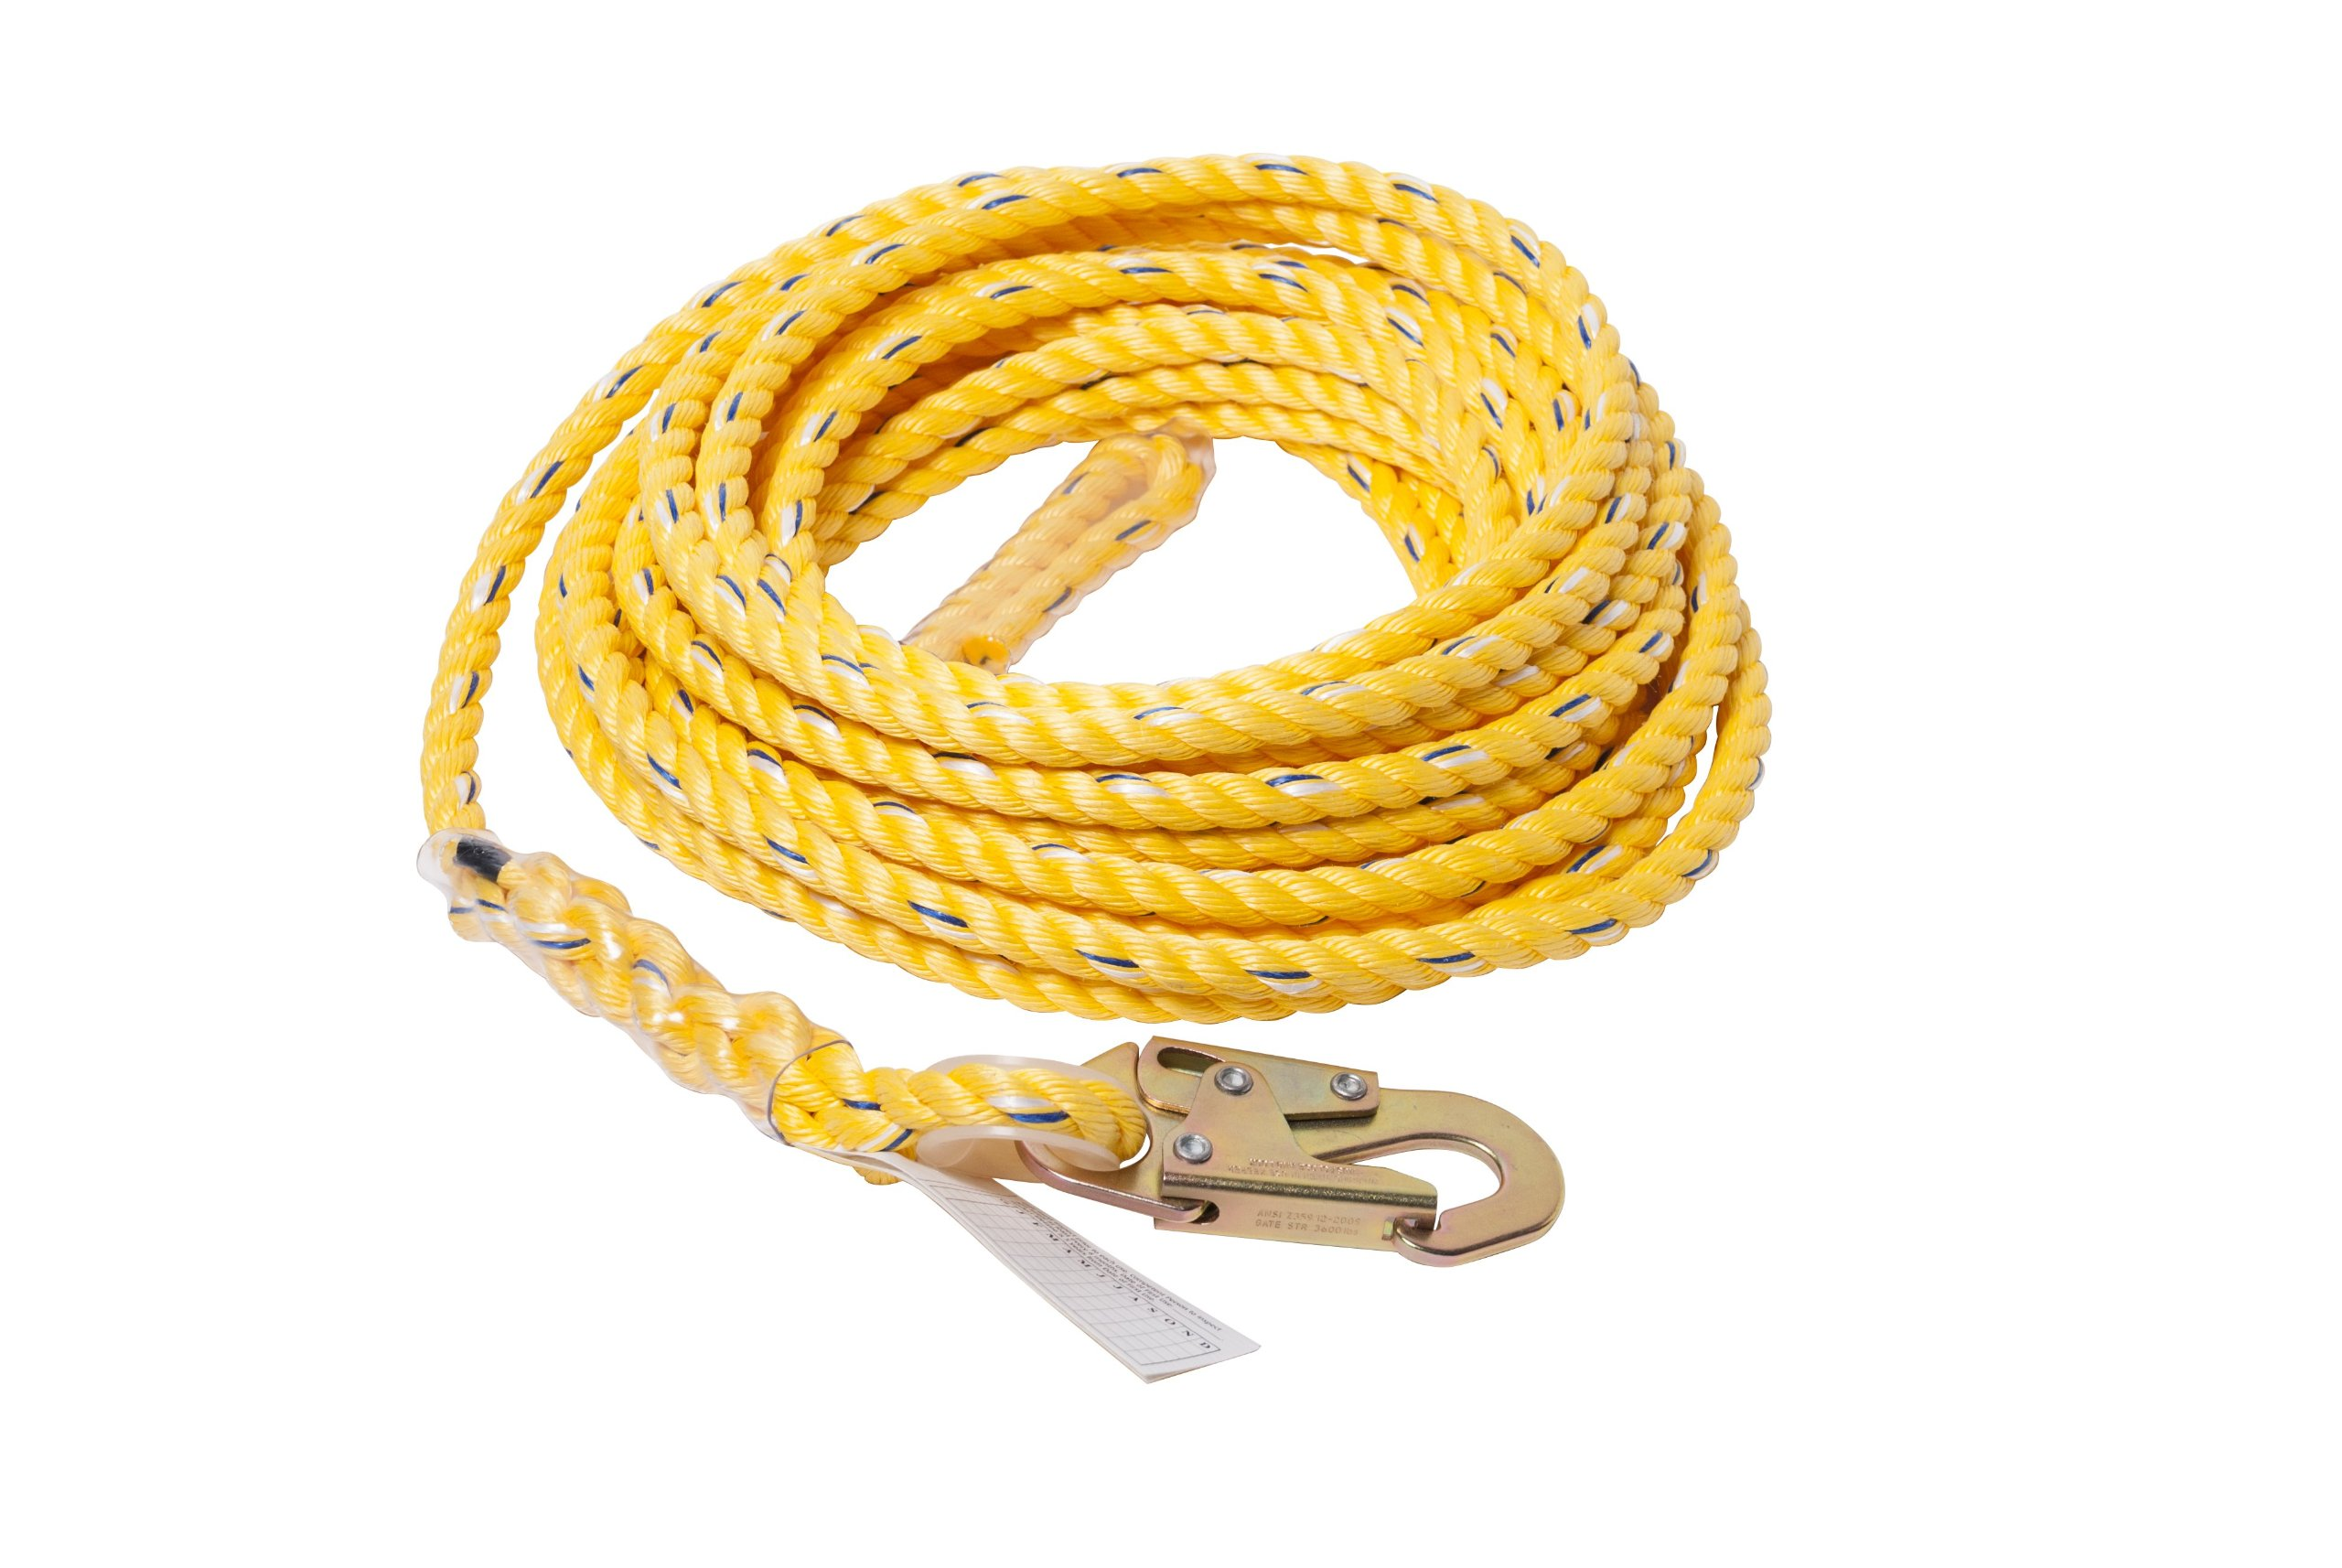 Guardian Fall Protection 01365 VL58-150 Standard 5/8 Inch Thick Rope with Snaphook End, 150-Foot by Guardian Fall Protection